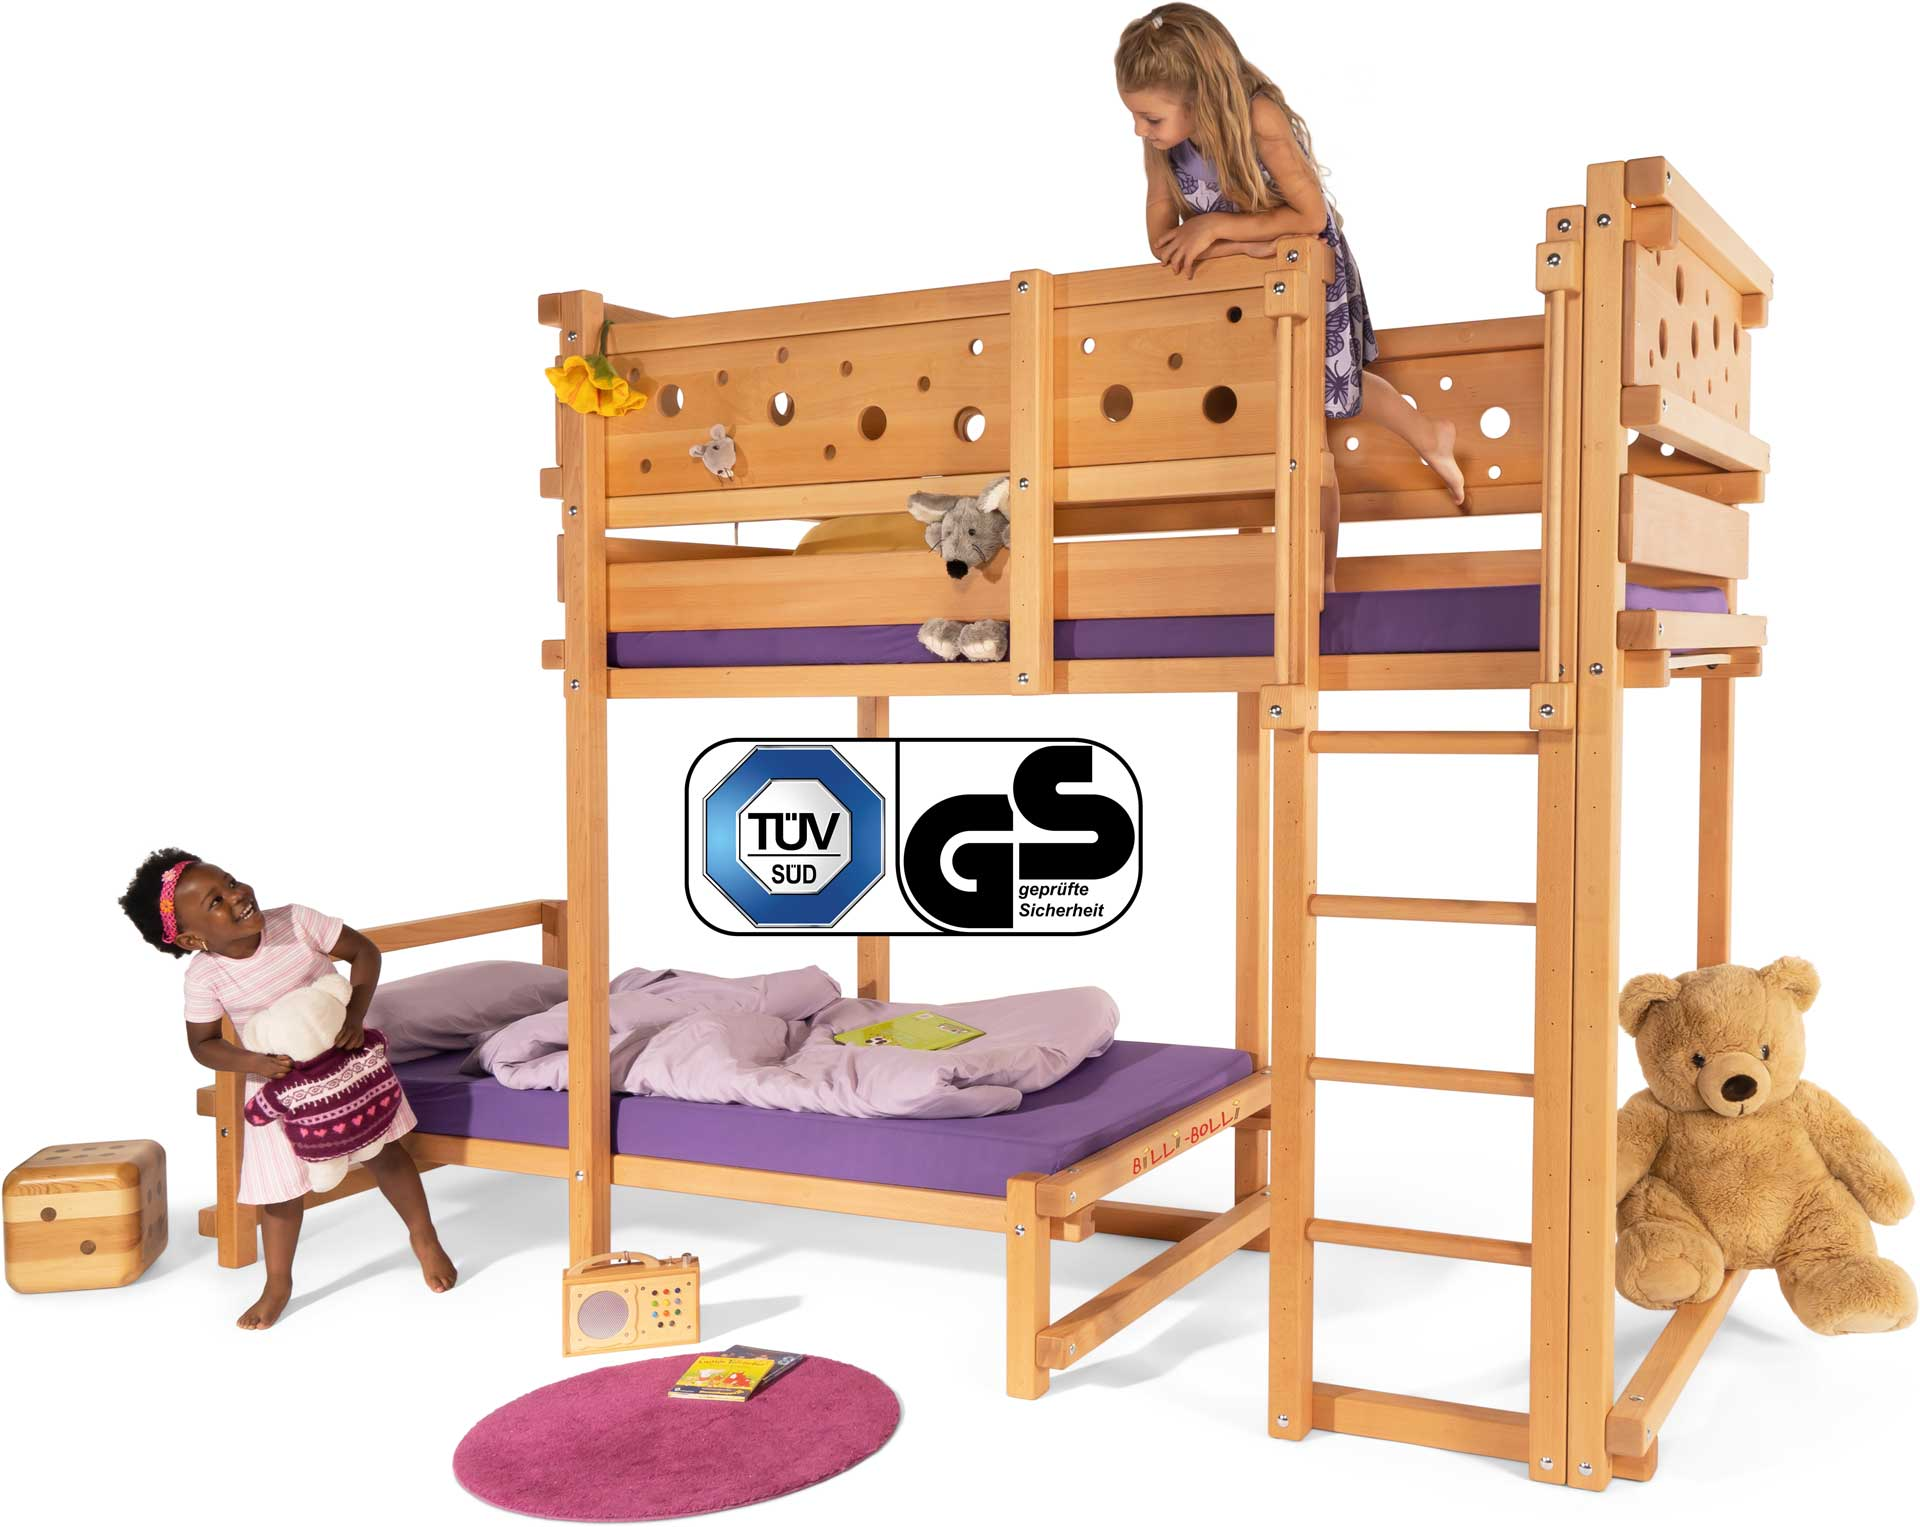 kinderbett hochbett oder etagenbett kinderm bel von. Black Bedroom Furniture Sets. Home Design Ideas